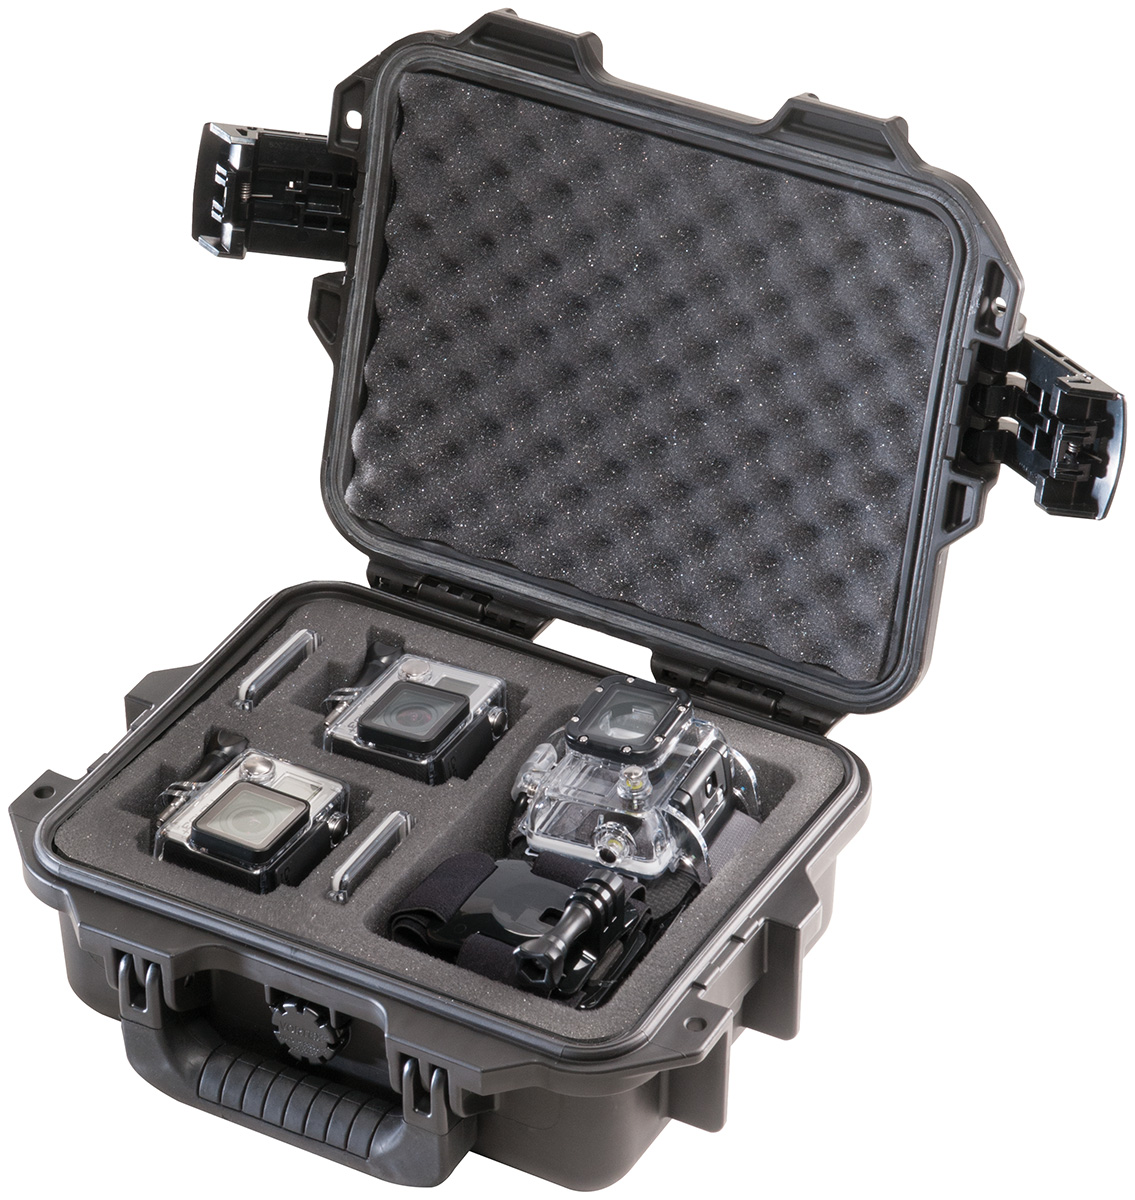 pelican peli products iM2050GP2 watertight gopro hero strong case hardigg hardcase